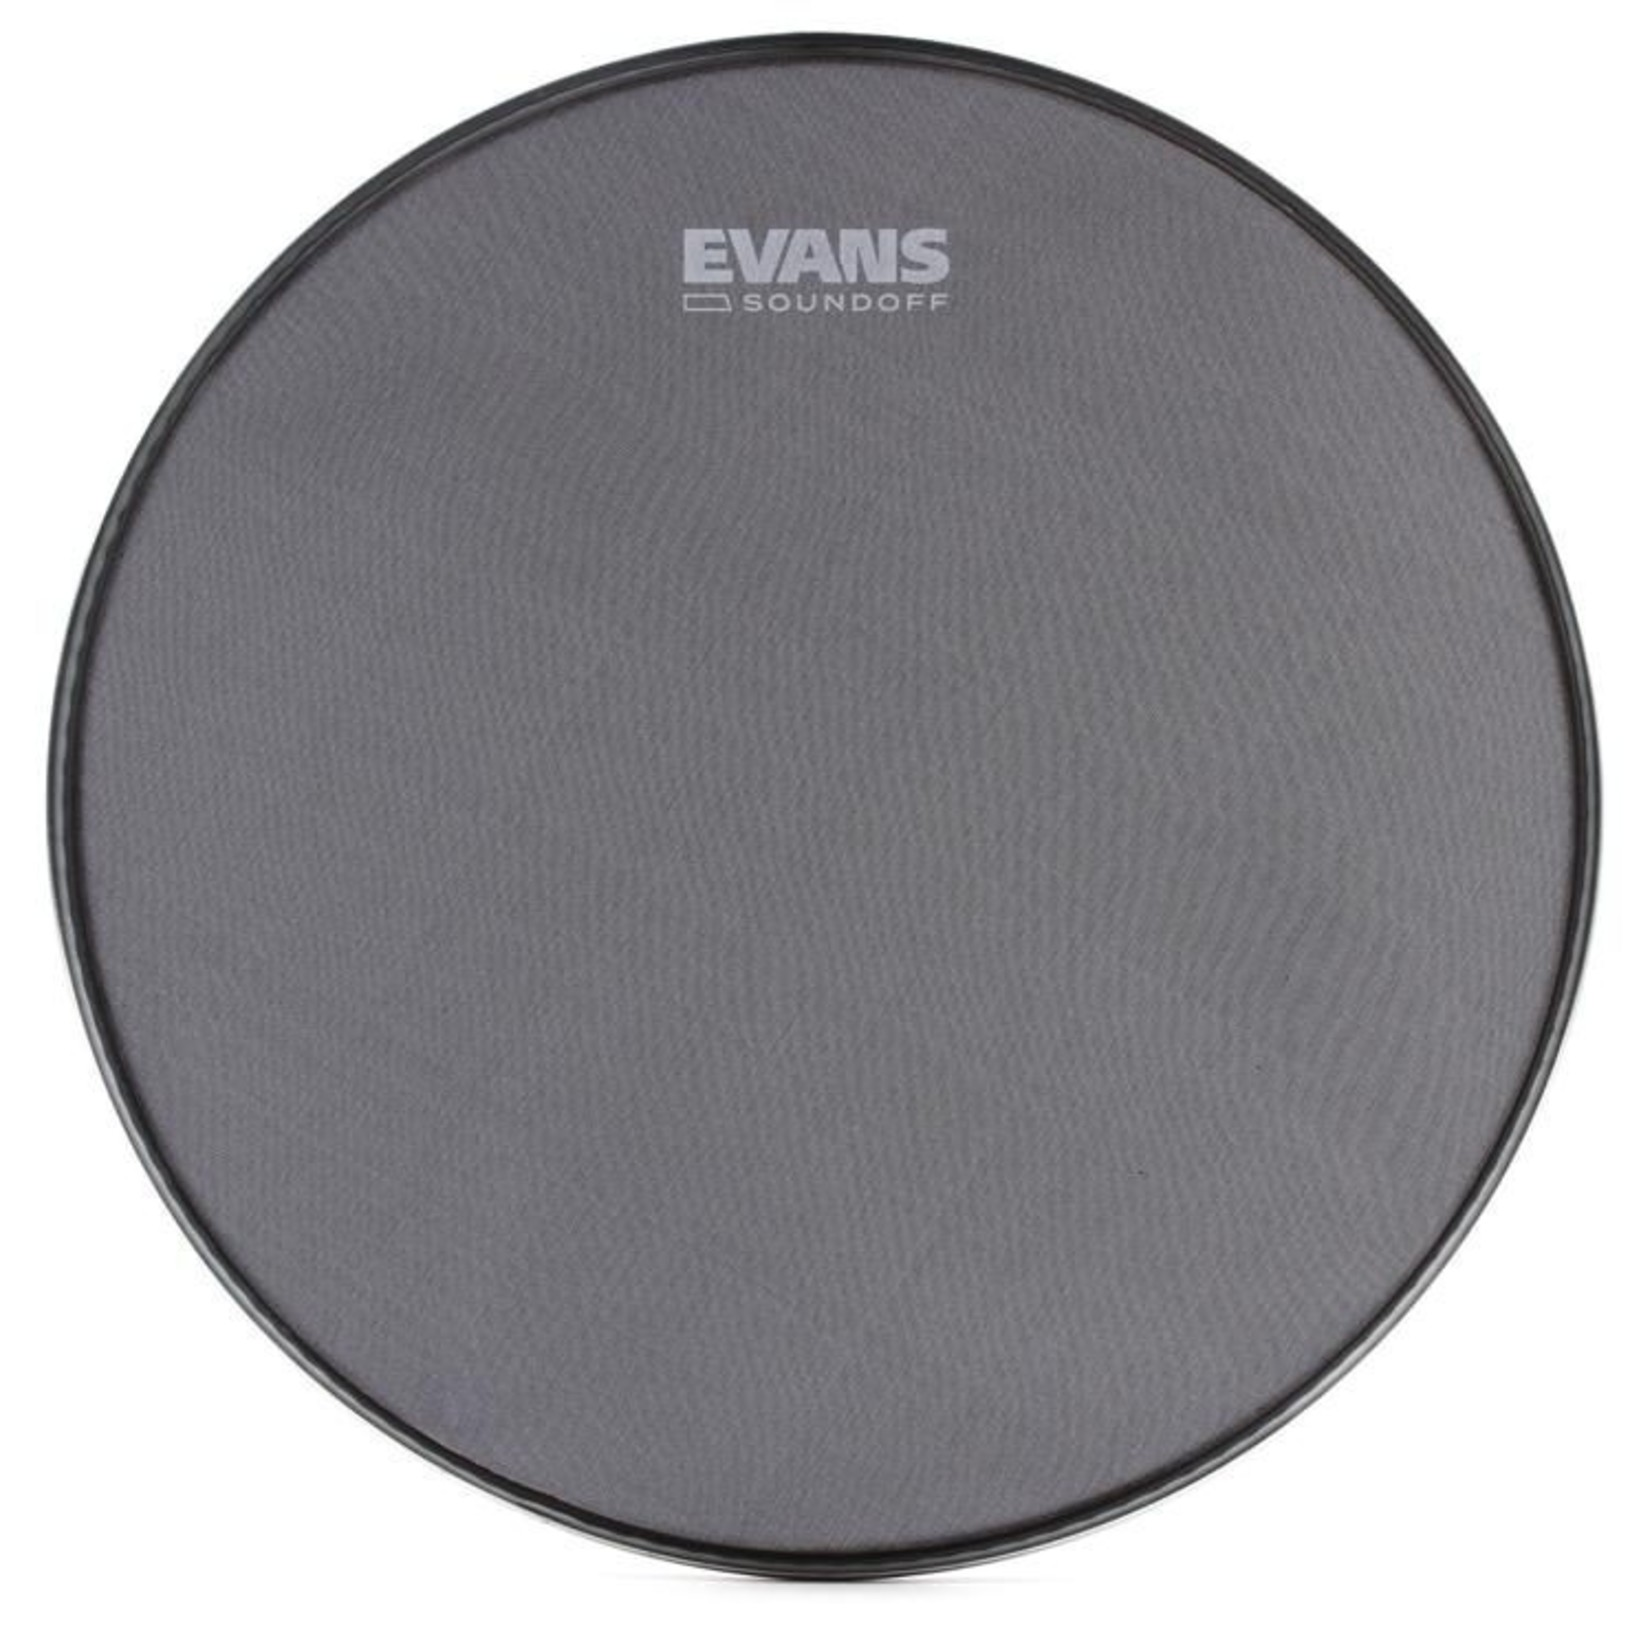 Evans Evans Soundoff Bass Drum Heads